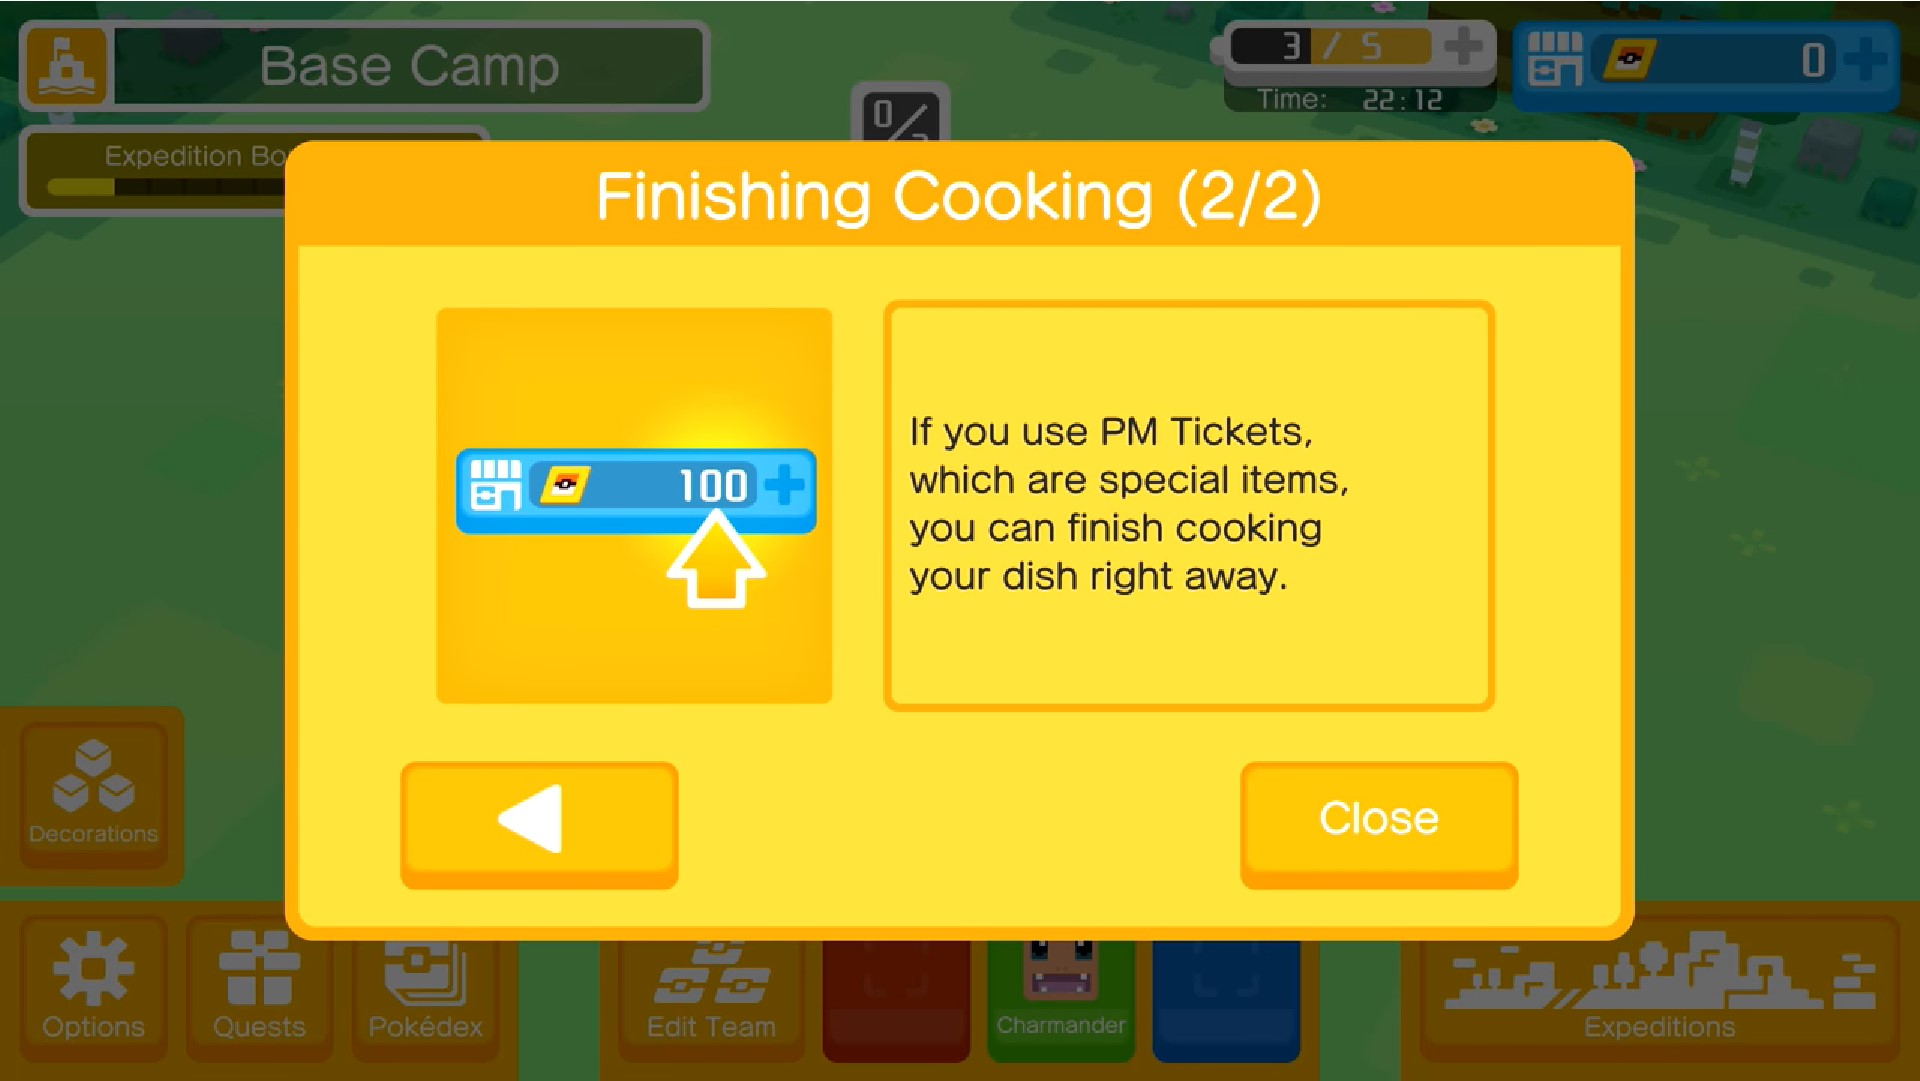 1617871971 973 70 Pokemon Quest PM Tickets: How To Get Free PM Tickets, Pokemon Quest Cheats